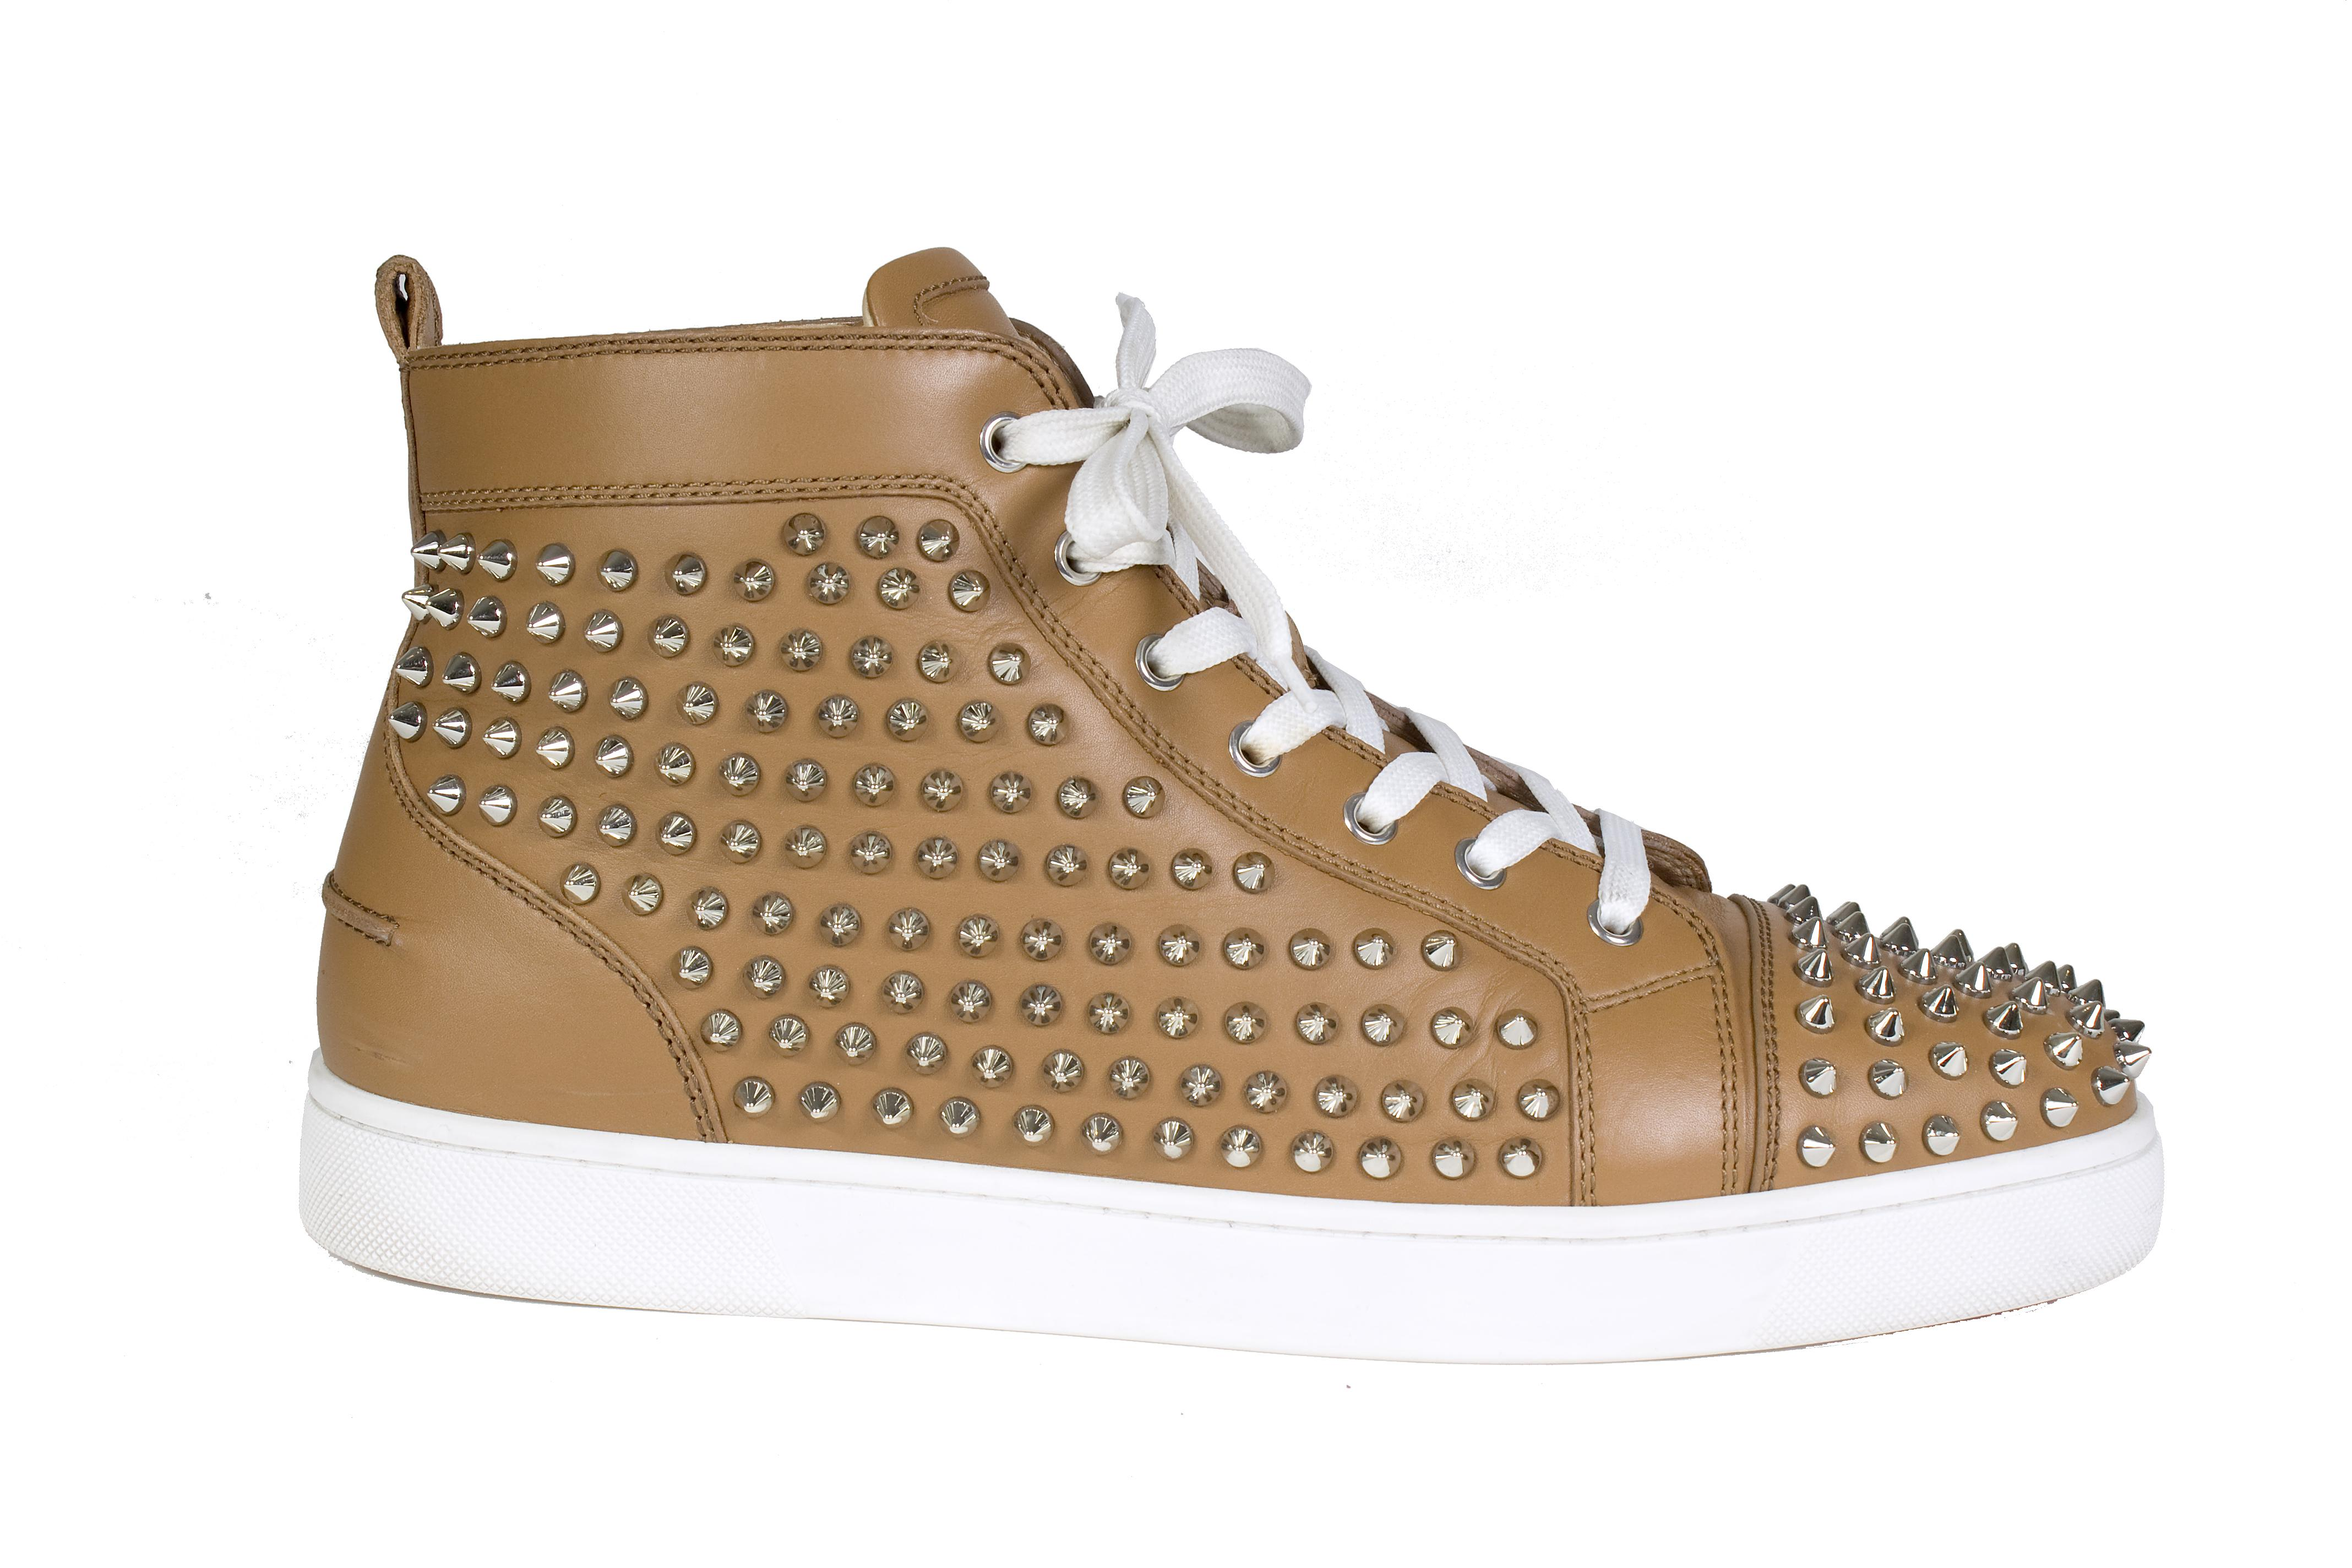 sneakers for cheap 1c5cb 305ac Christian Louboutin Hi Studded Sneakers Flats Size US 12 Top ...